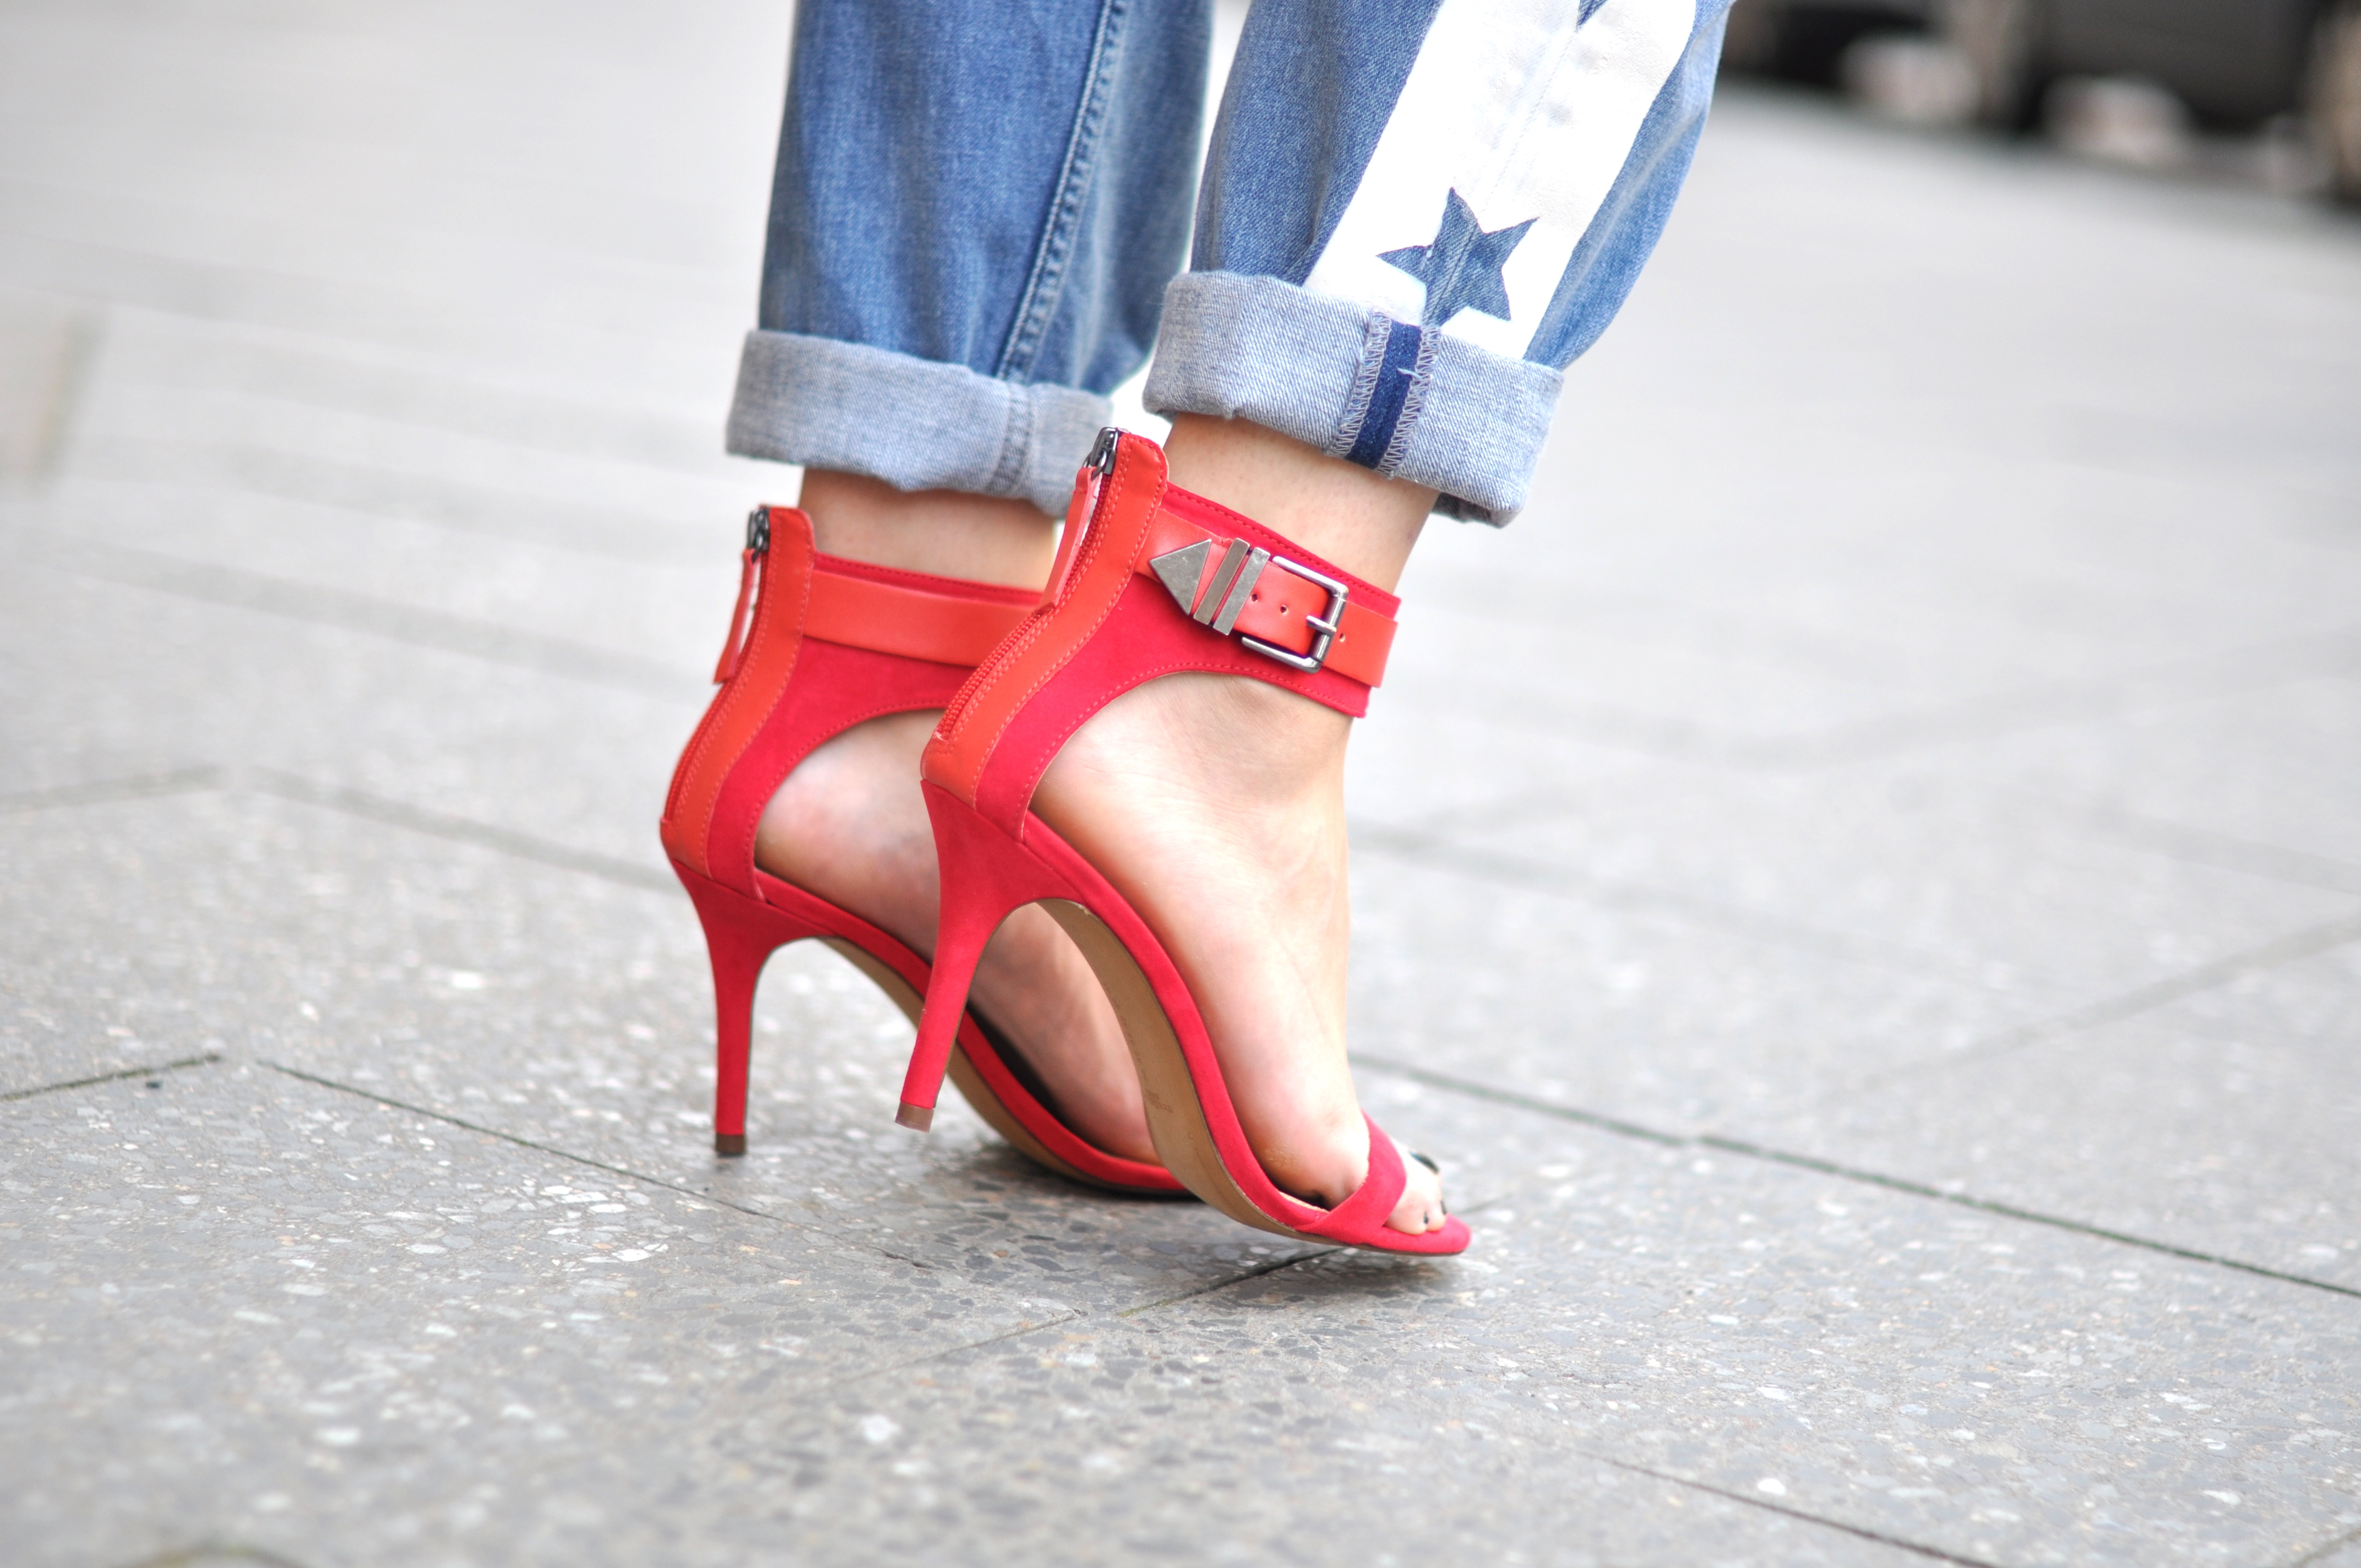 The Red Heels